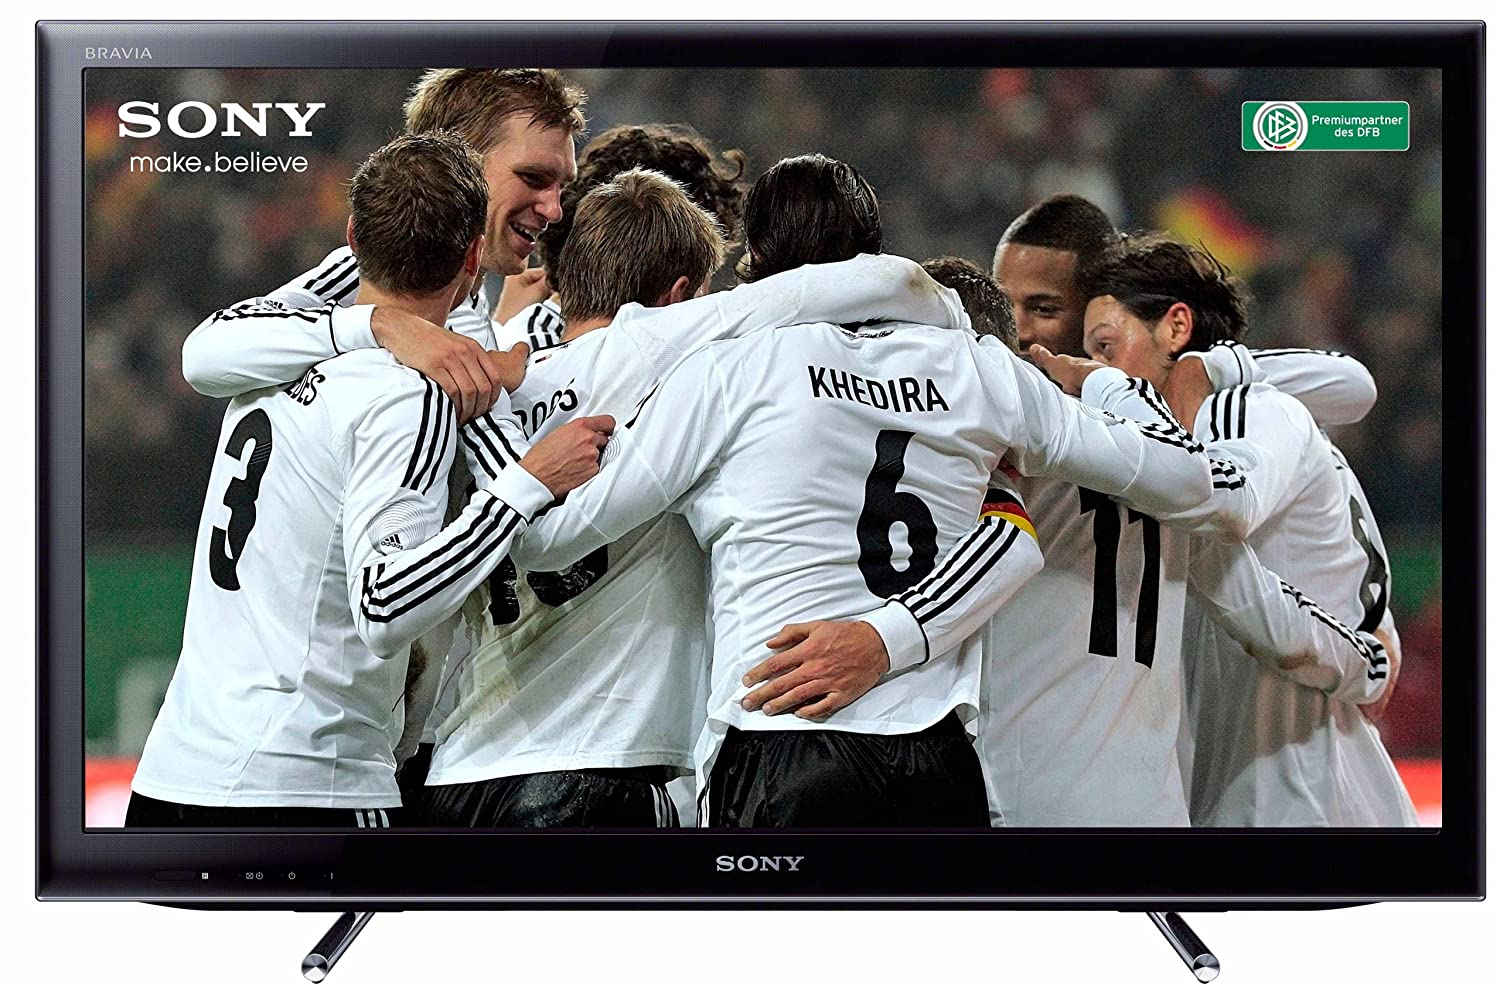 Sony-46-FULLHD-LED-TV-SMART-KDL46EX655-VENEZUELA-